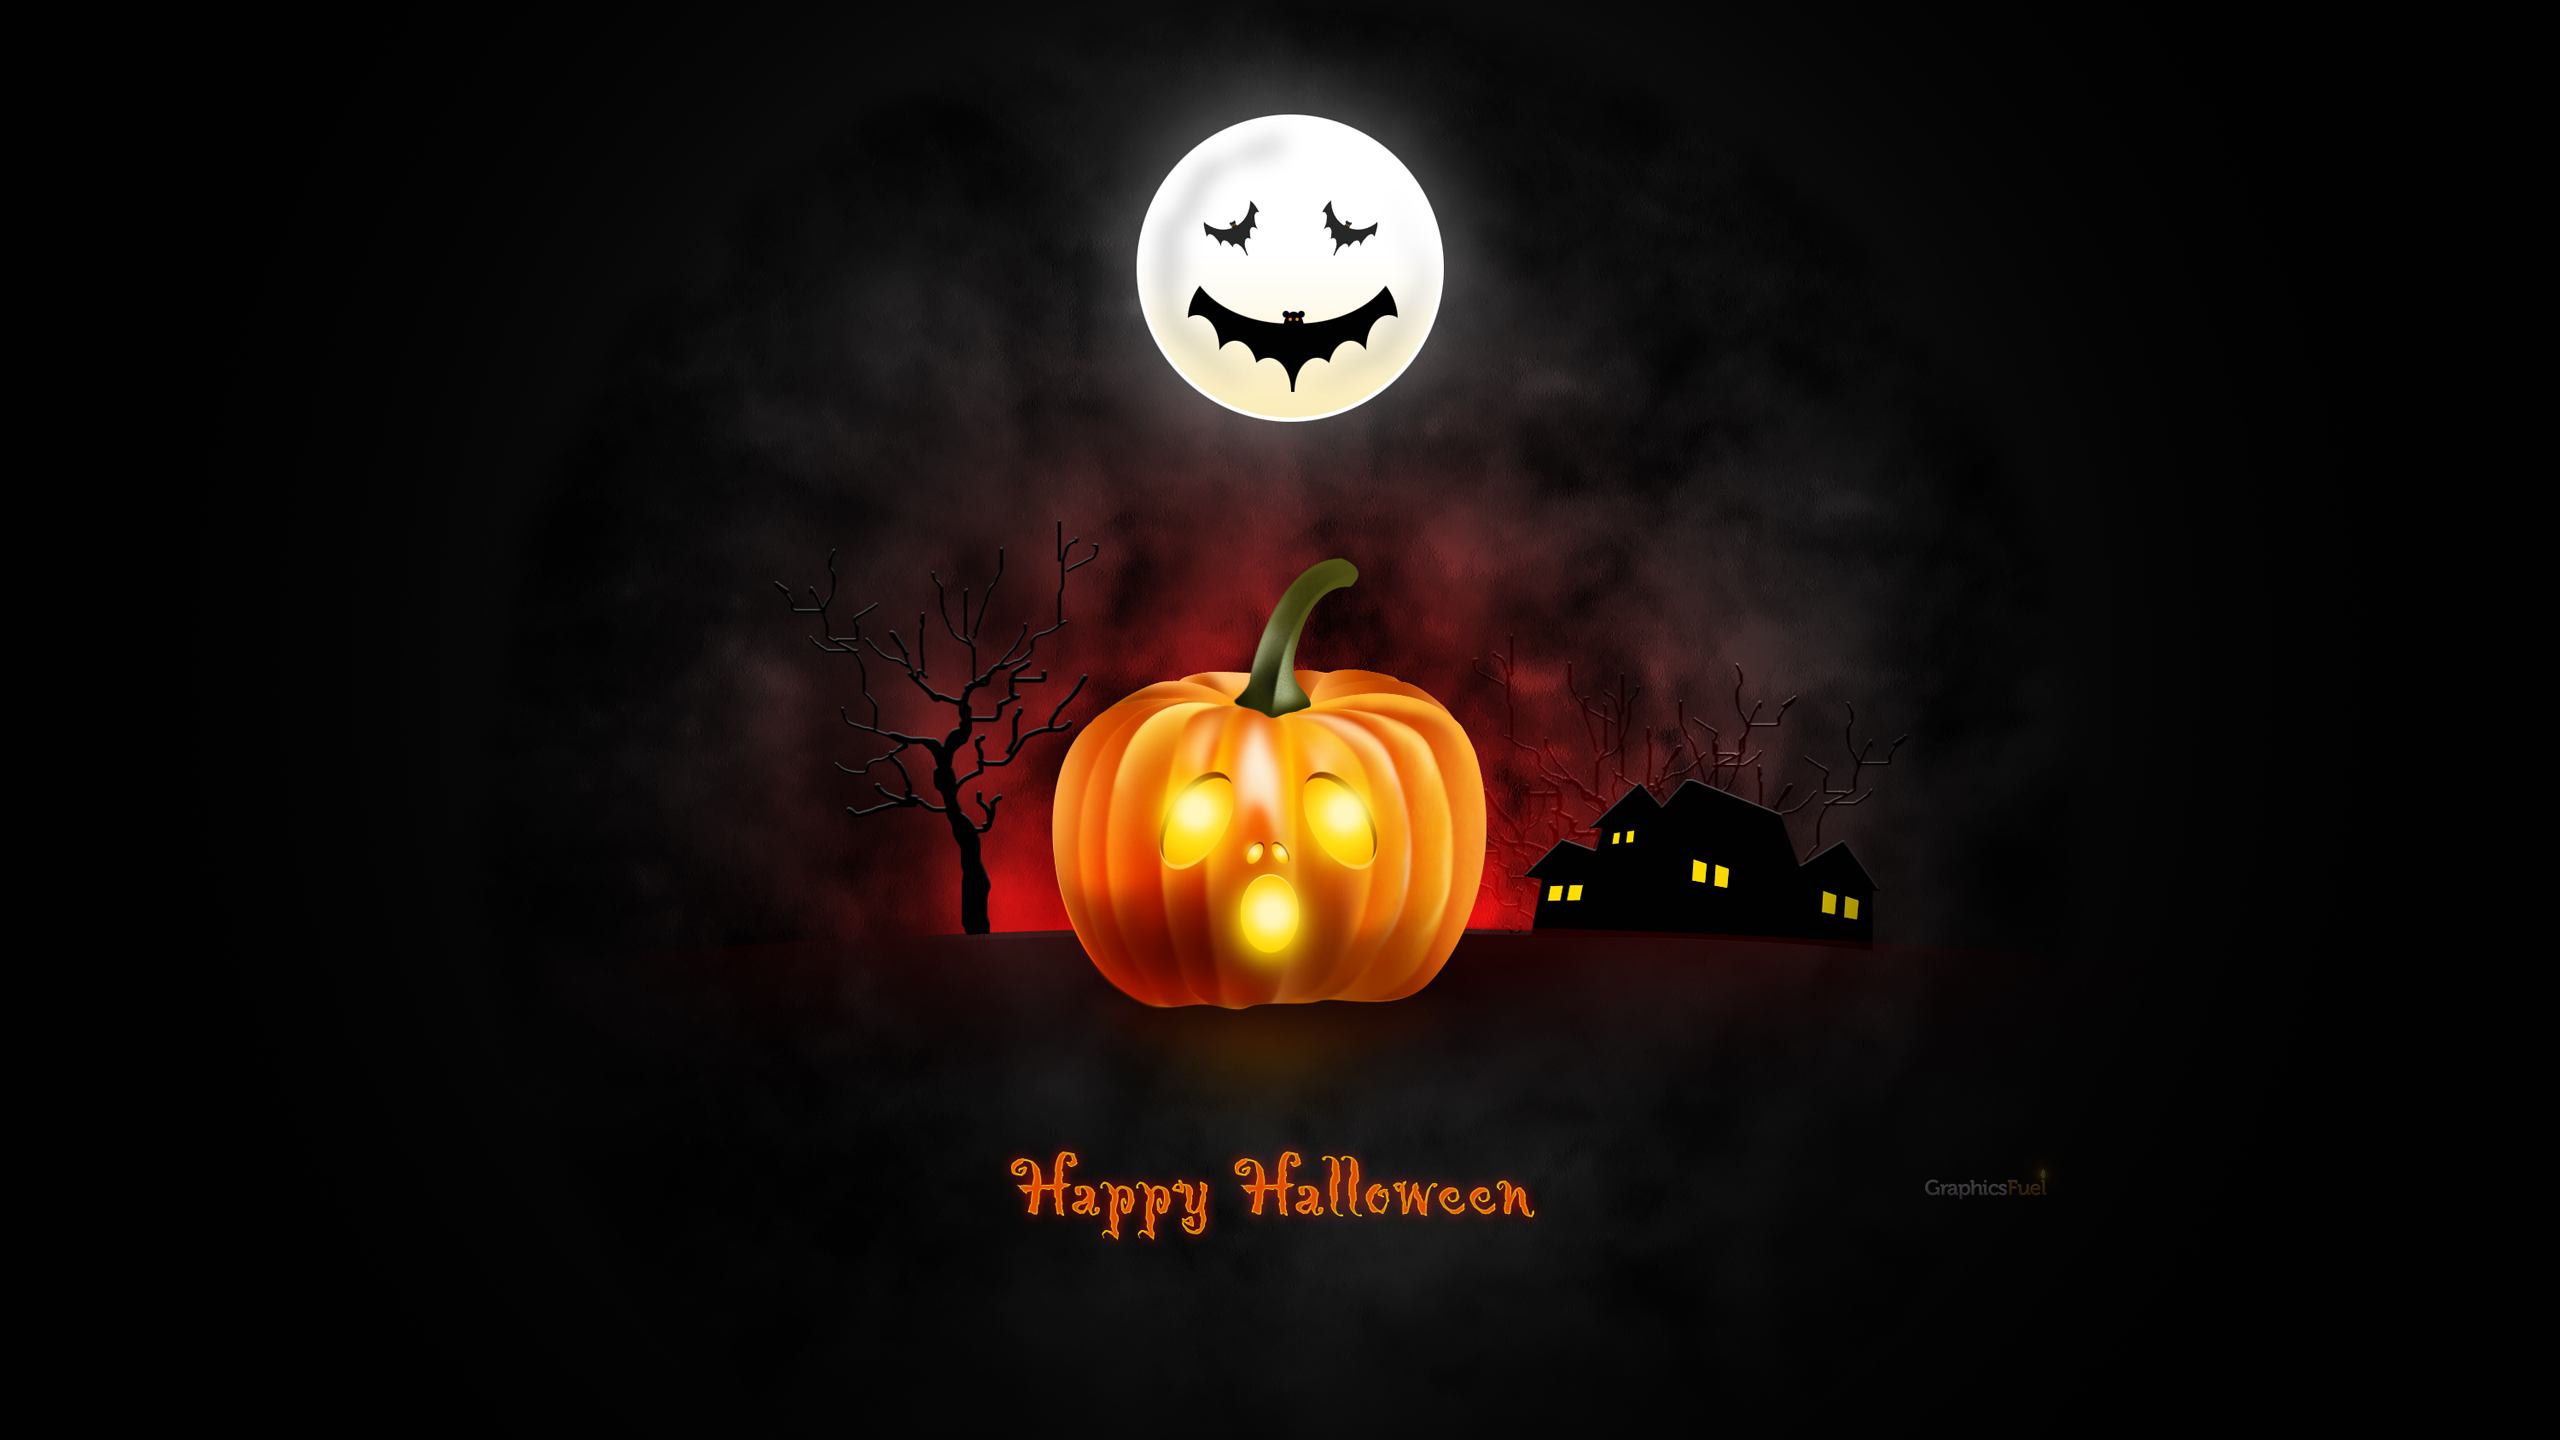 Most Inspiring Wallpaper Macbook Halloween - halloween-wallpaper-2560x1440px  You Should Have_775551.jpg